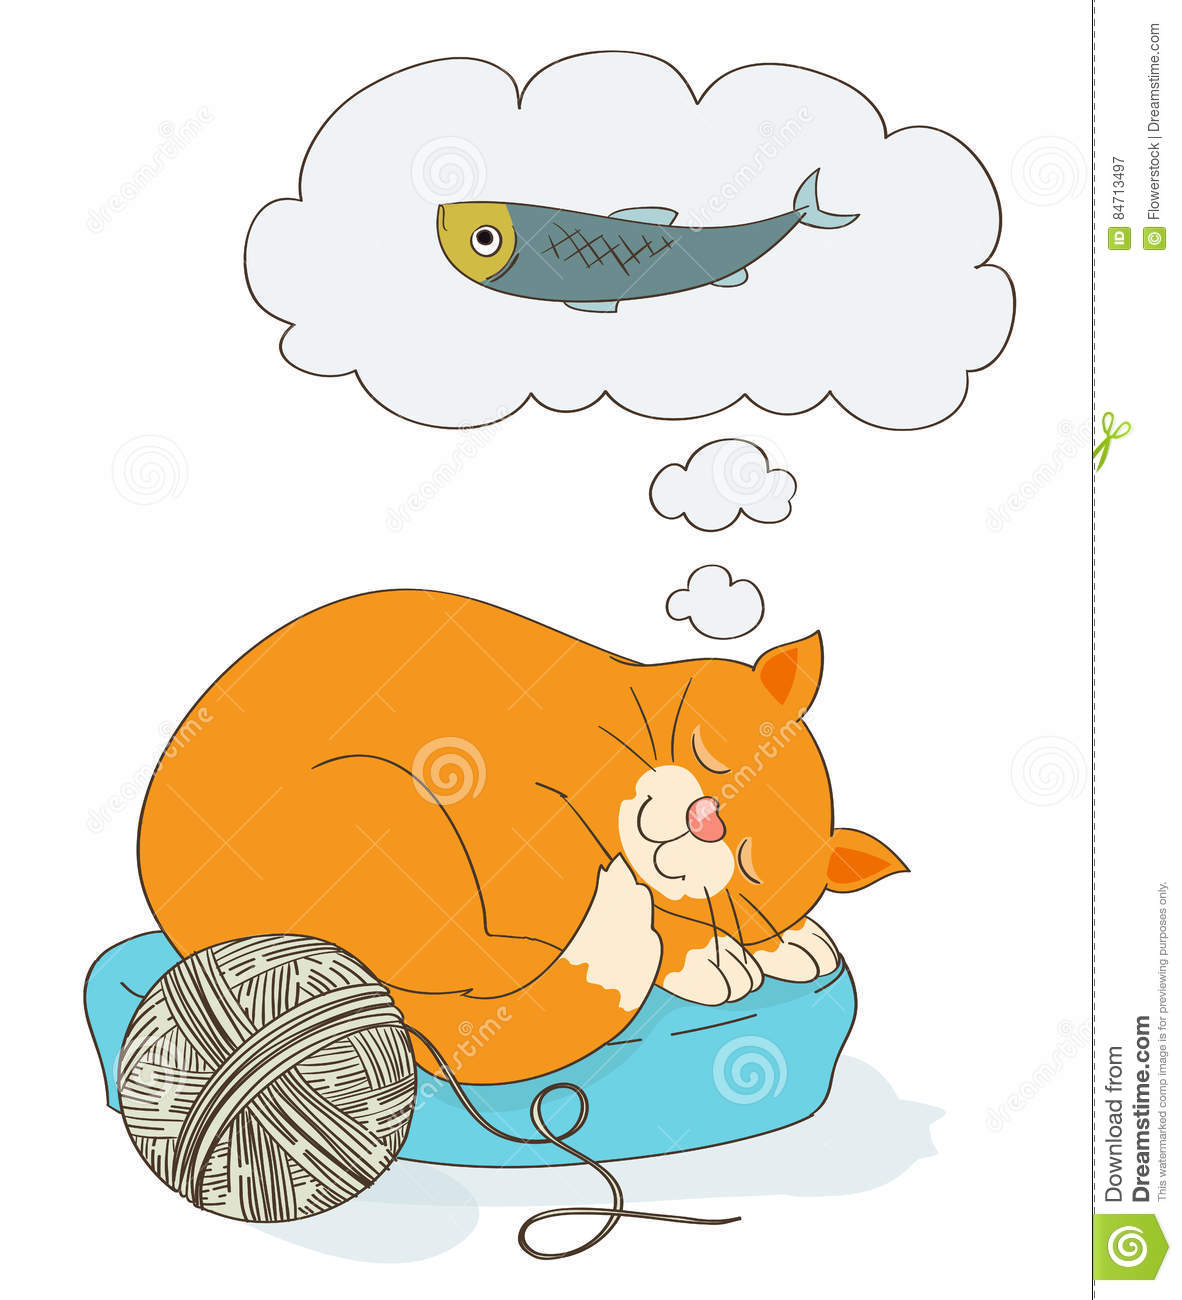 Cute cartoon cat dreaming of a fish as food stock vector for Dreaming of fish